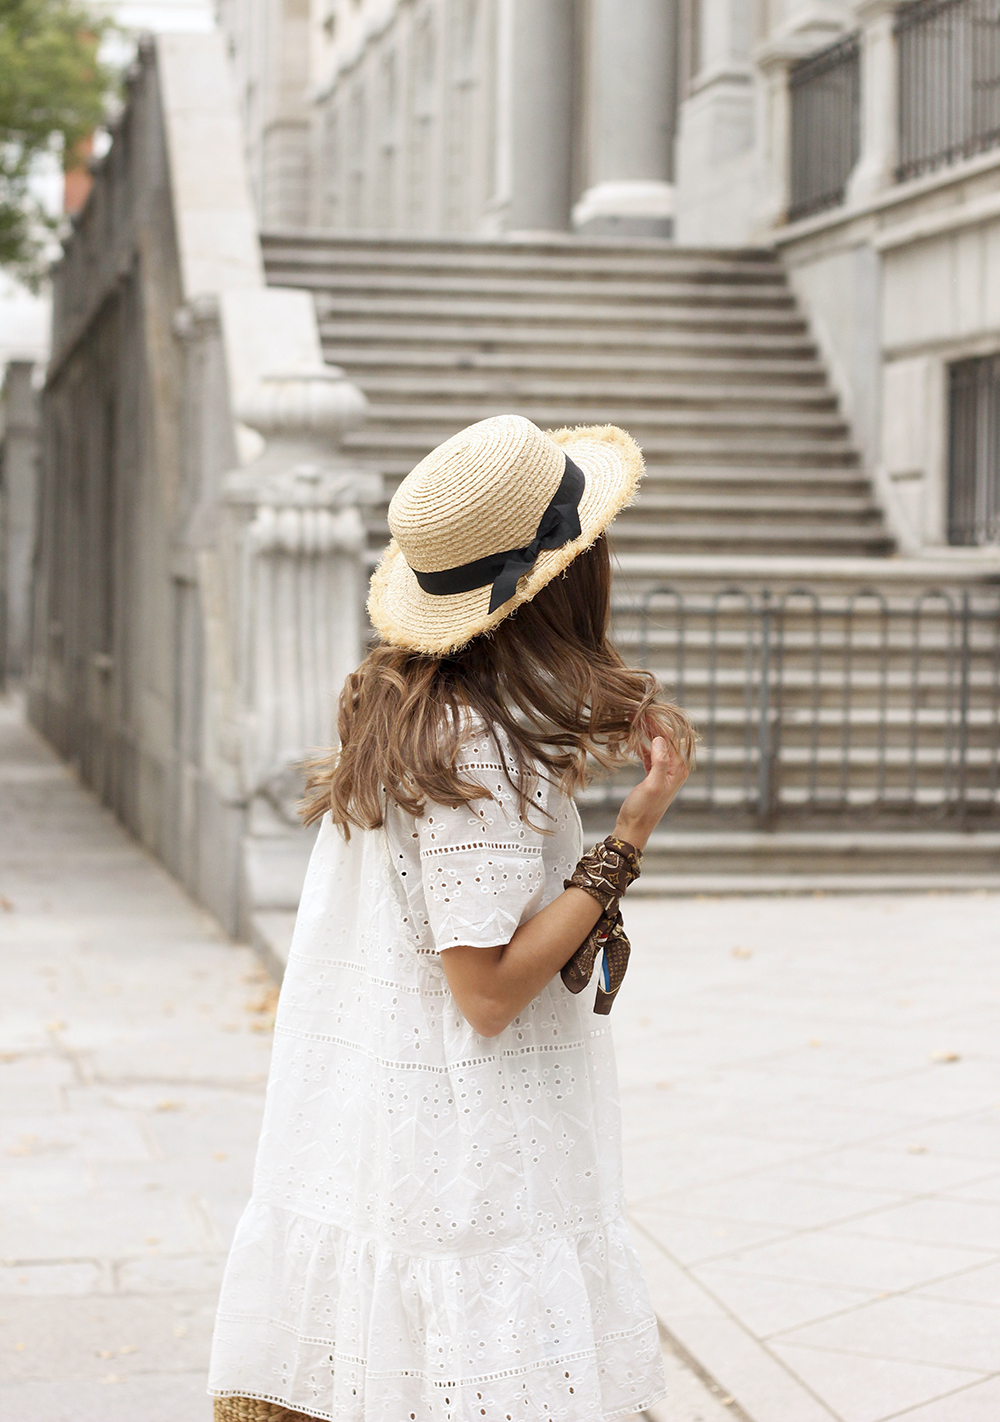 White summer dress canotier street style outfit 201912